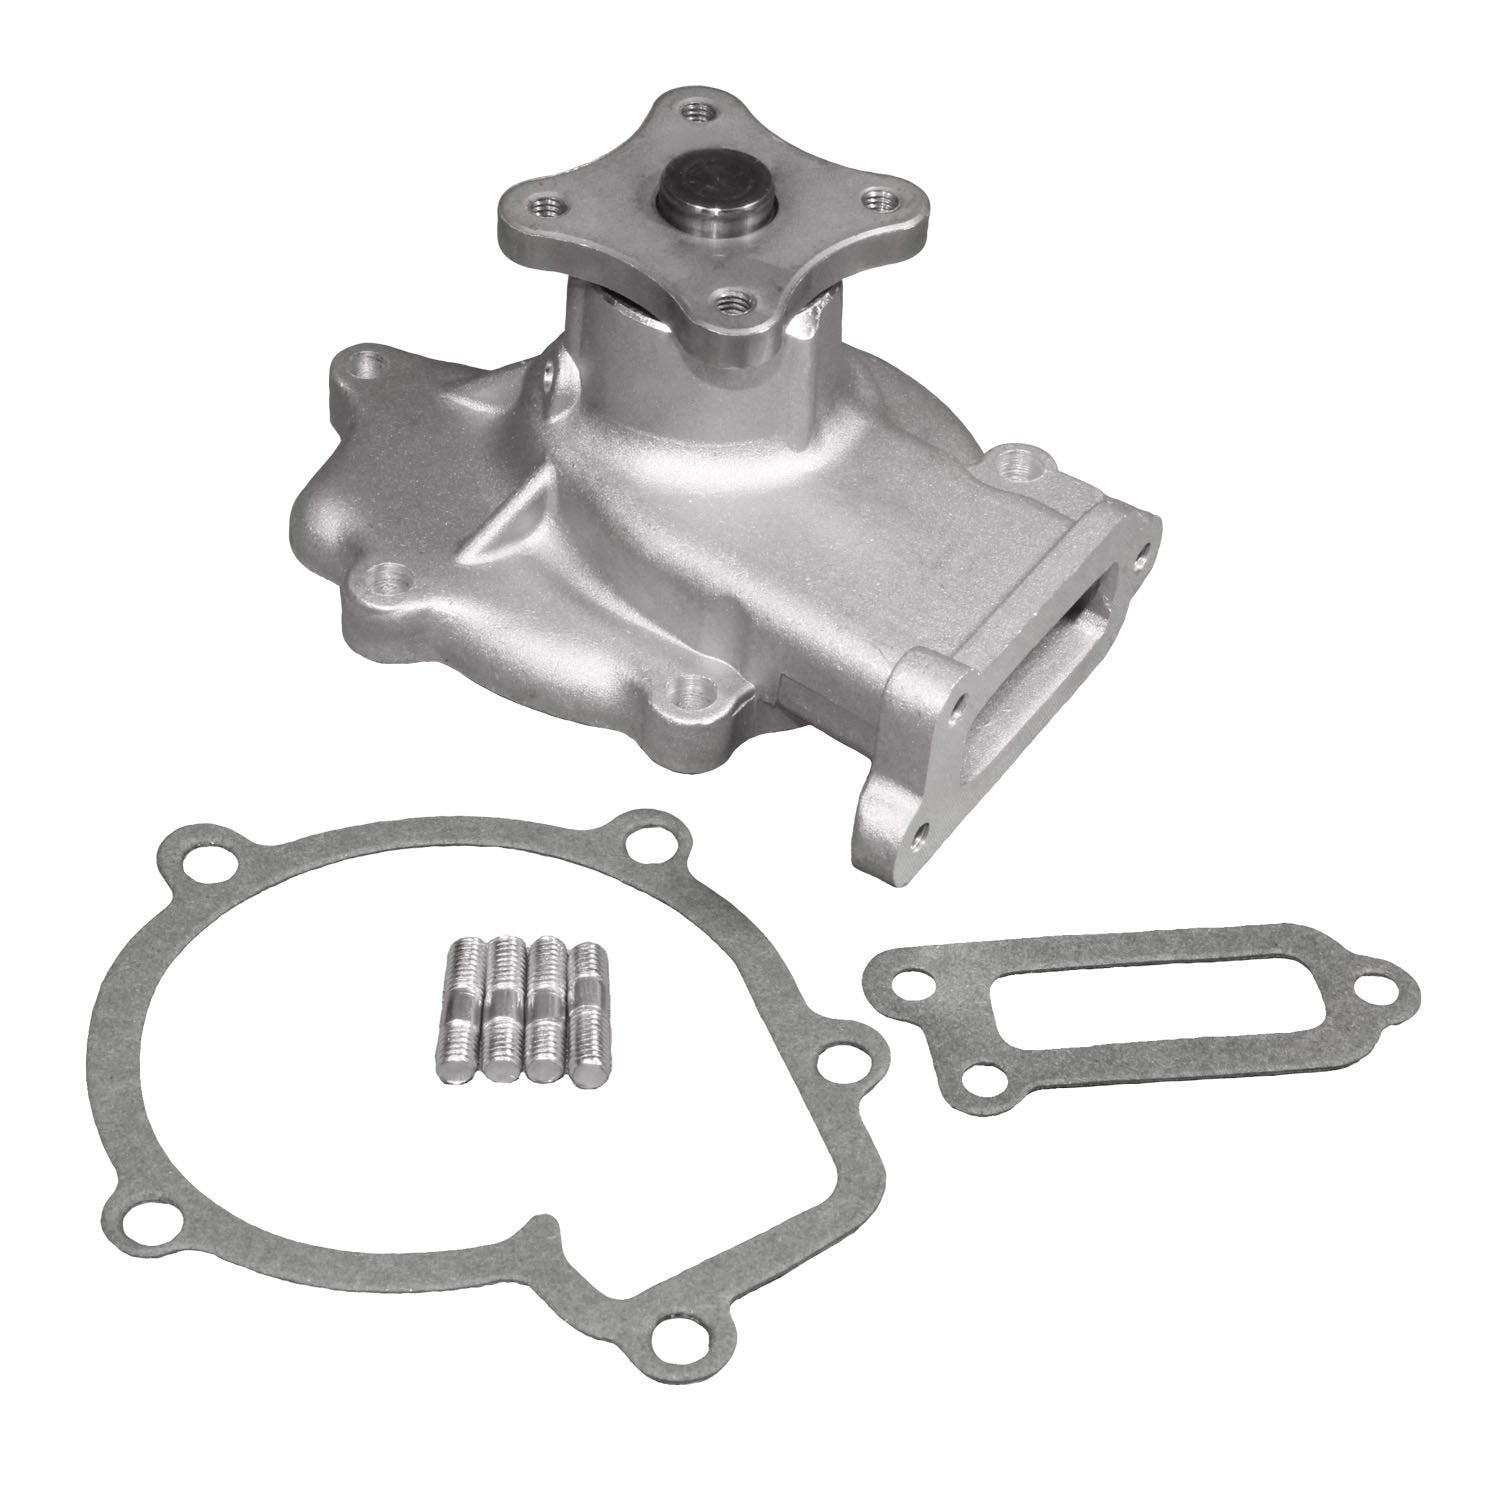 ACDelco 252-250 Professional Water Pump Kit